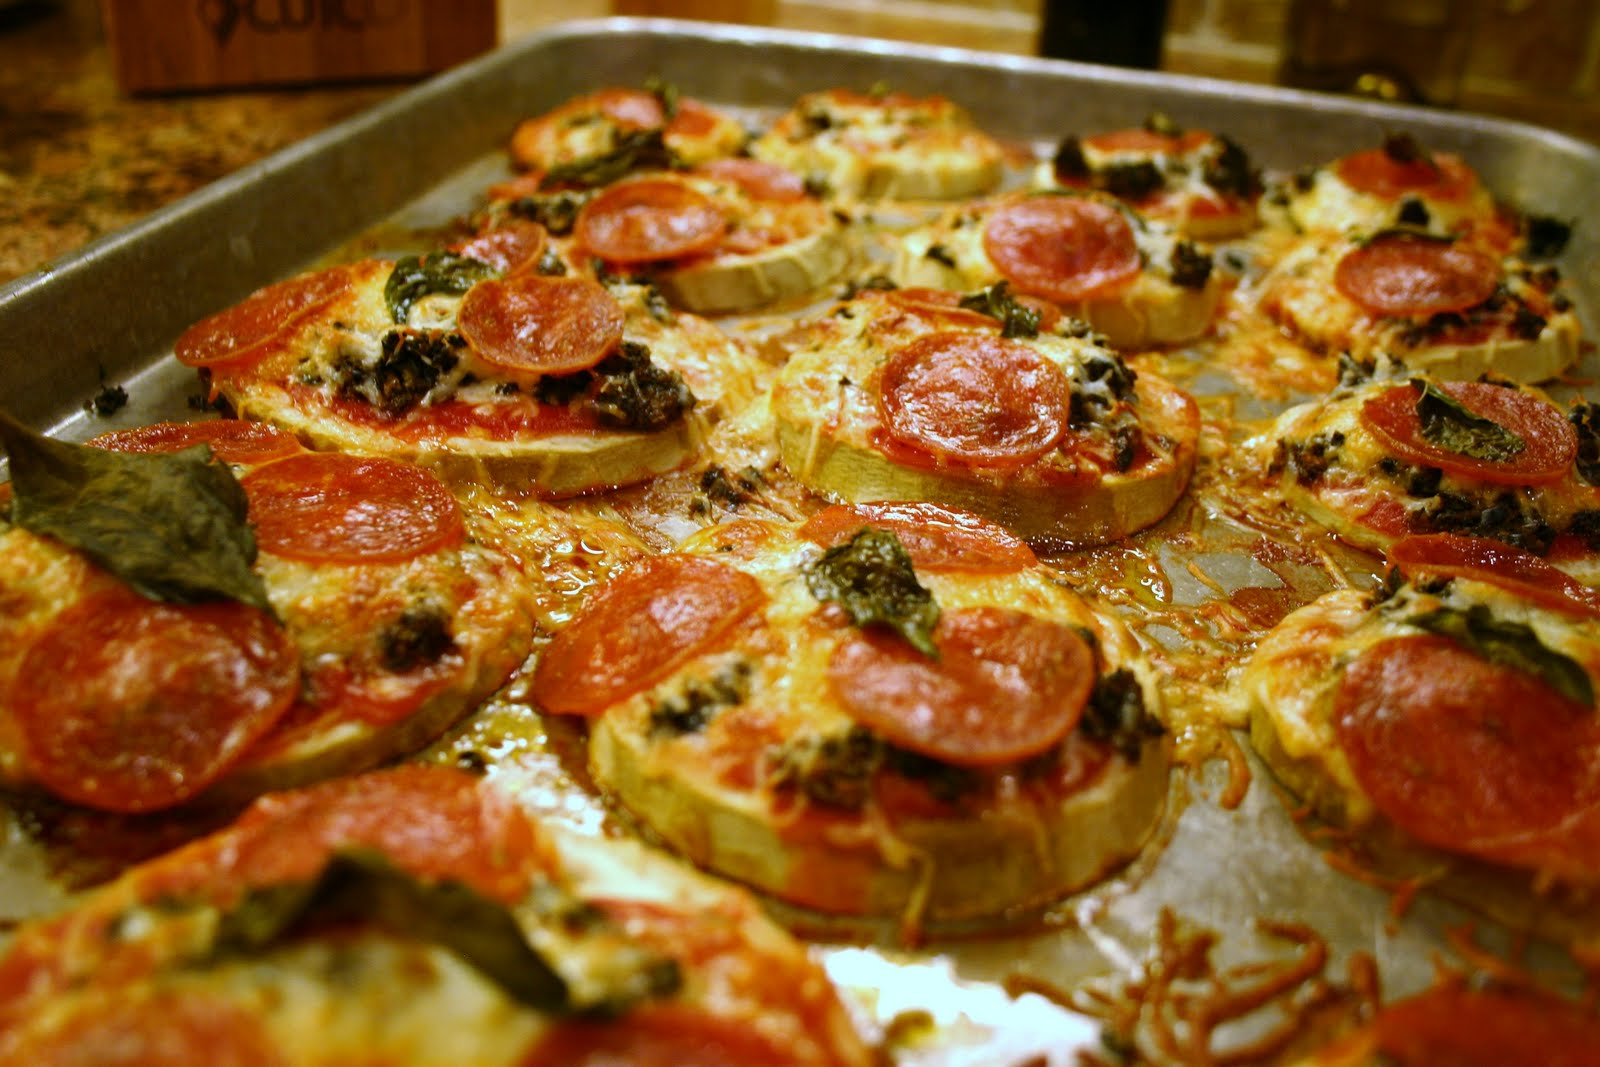 MY HCG DIET RECIPES: HCG DIET Phase 3 (P3) RECIPE #21: Eggplant Pizza